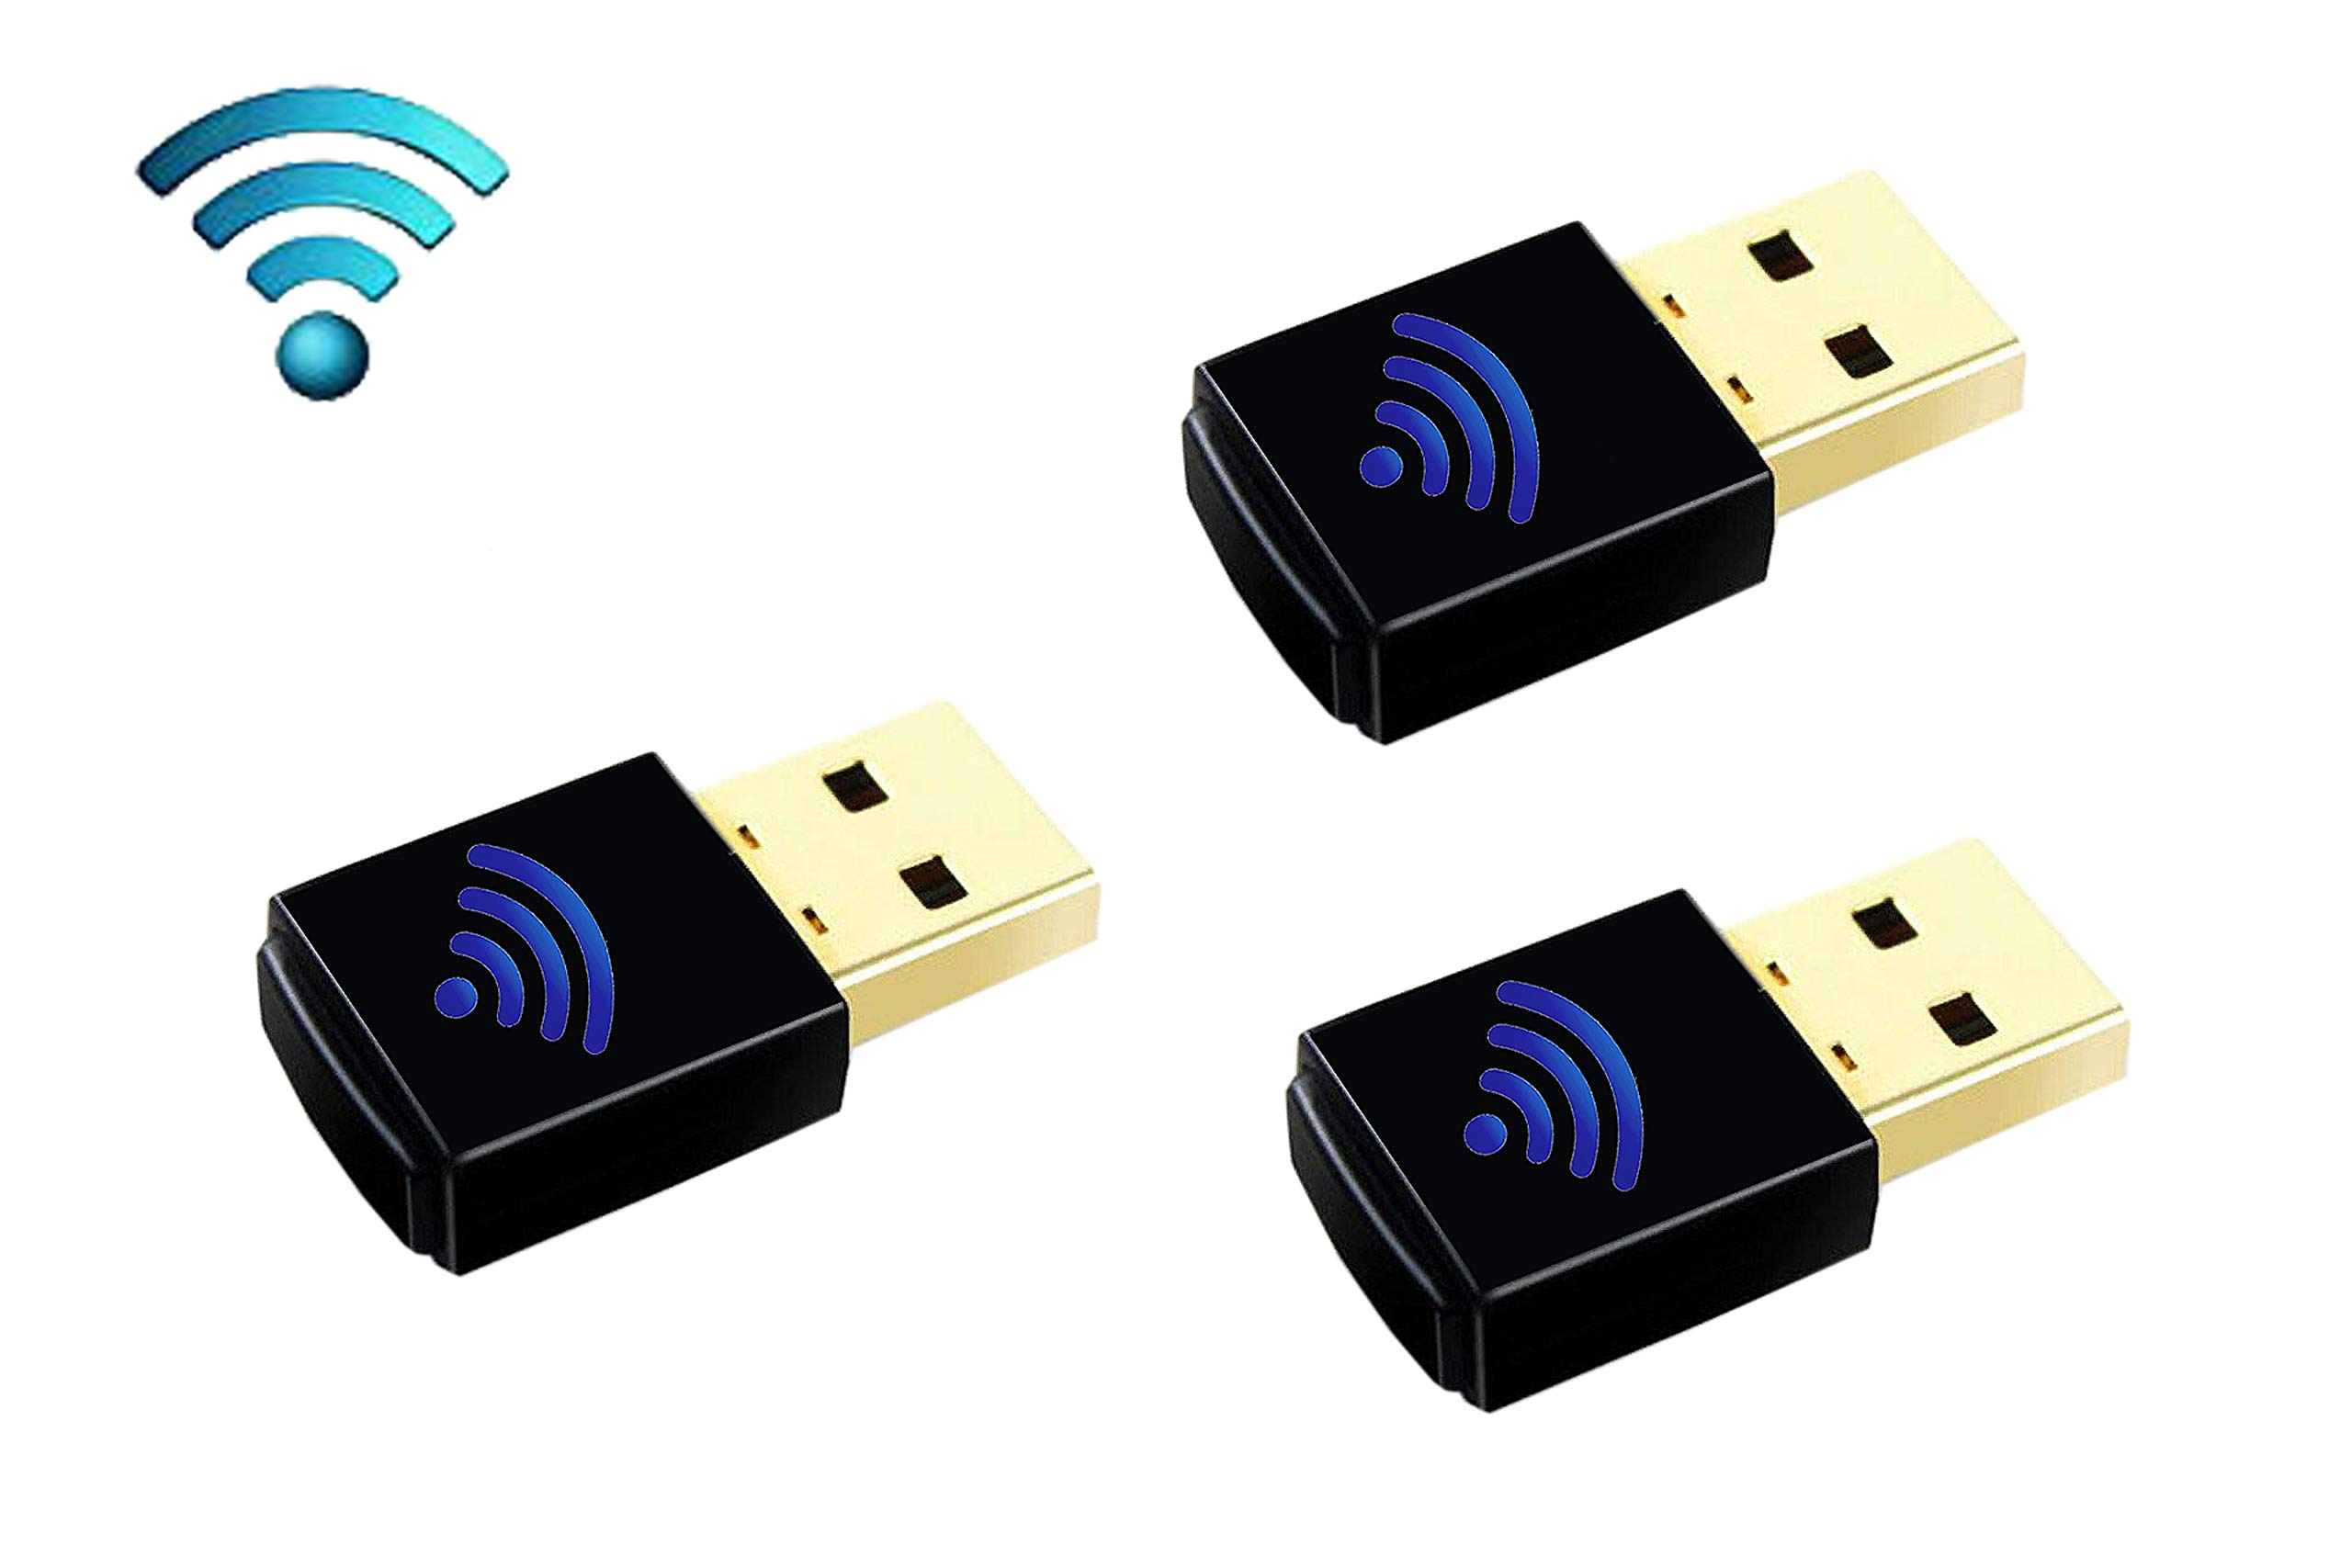 3PACK Supports Y/L WF40 Wi-Fi USB Dongle and IP Phones T27G,T29G,T46G,T48G,T46S,T48S,T52S,T54S, by Nuu You